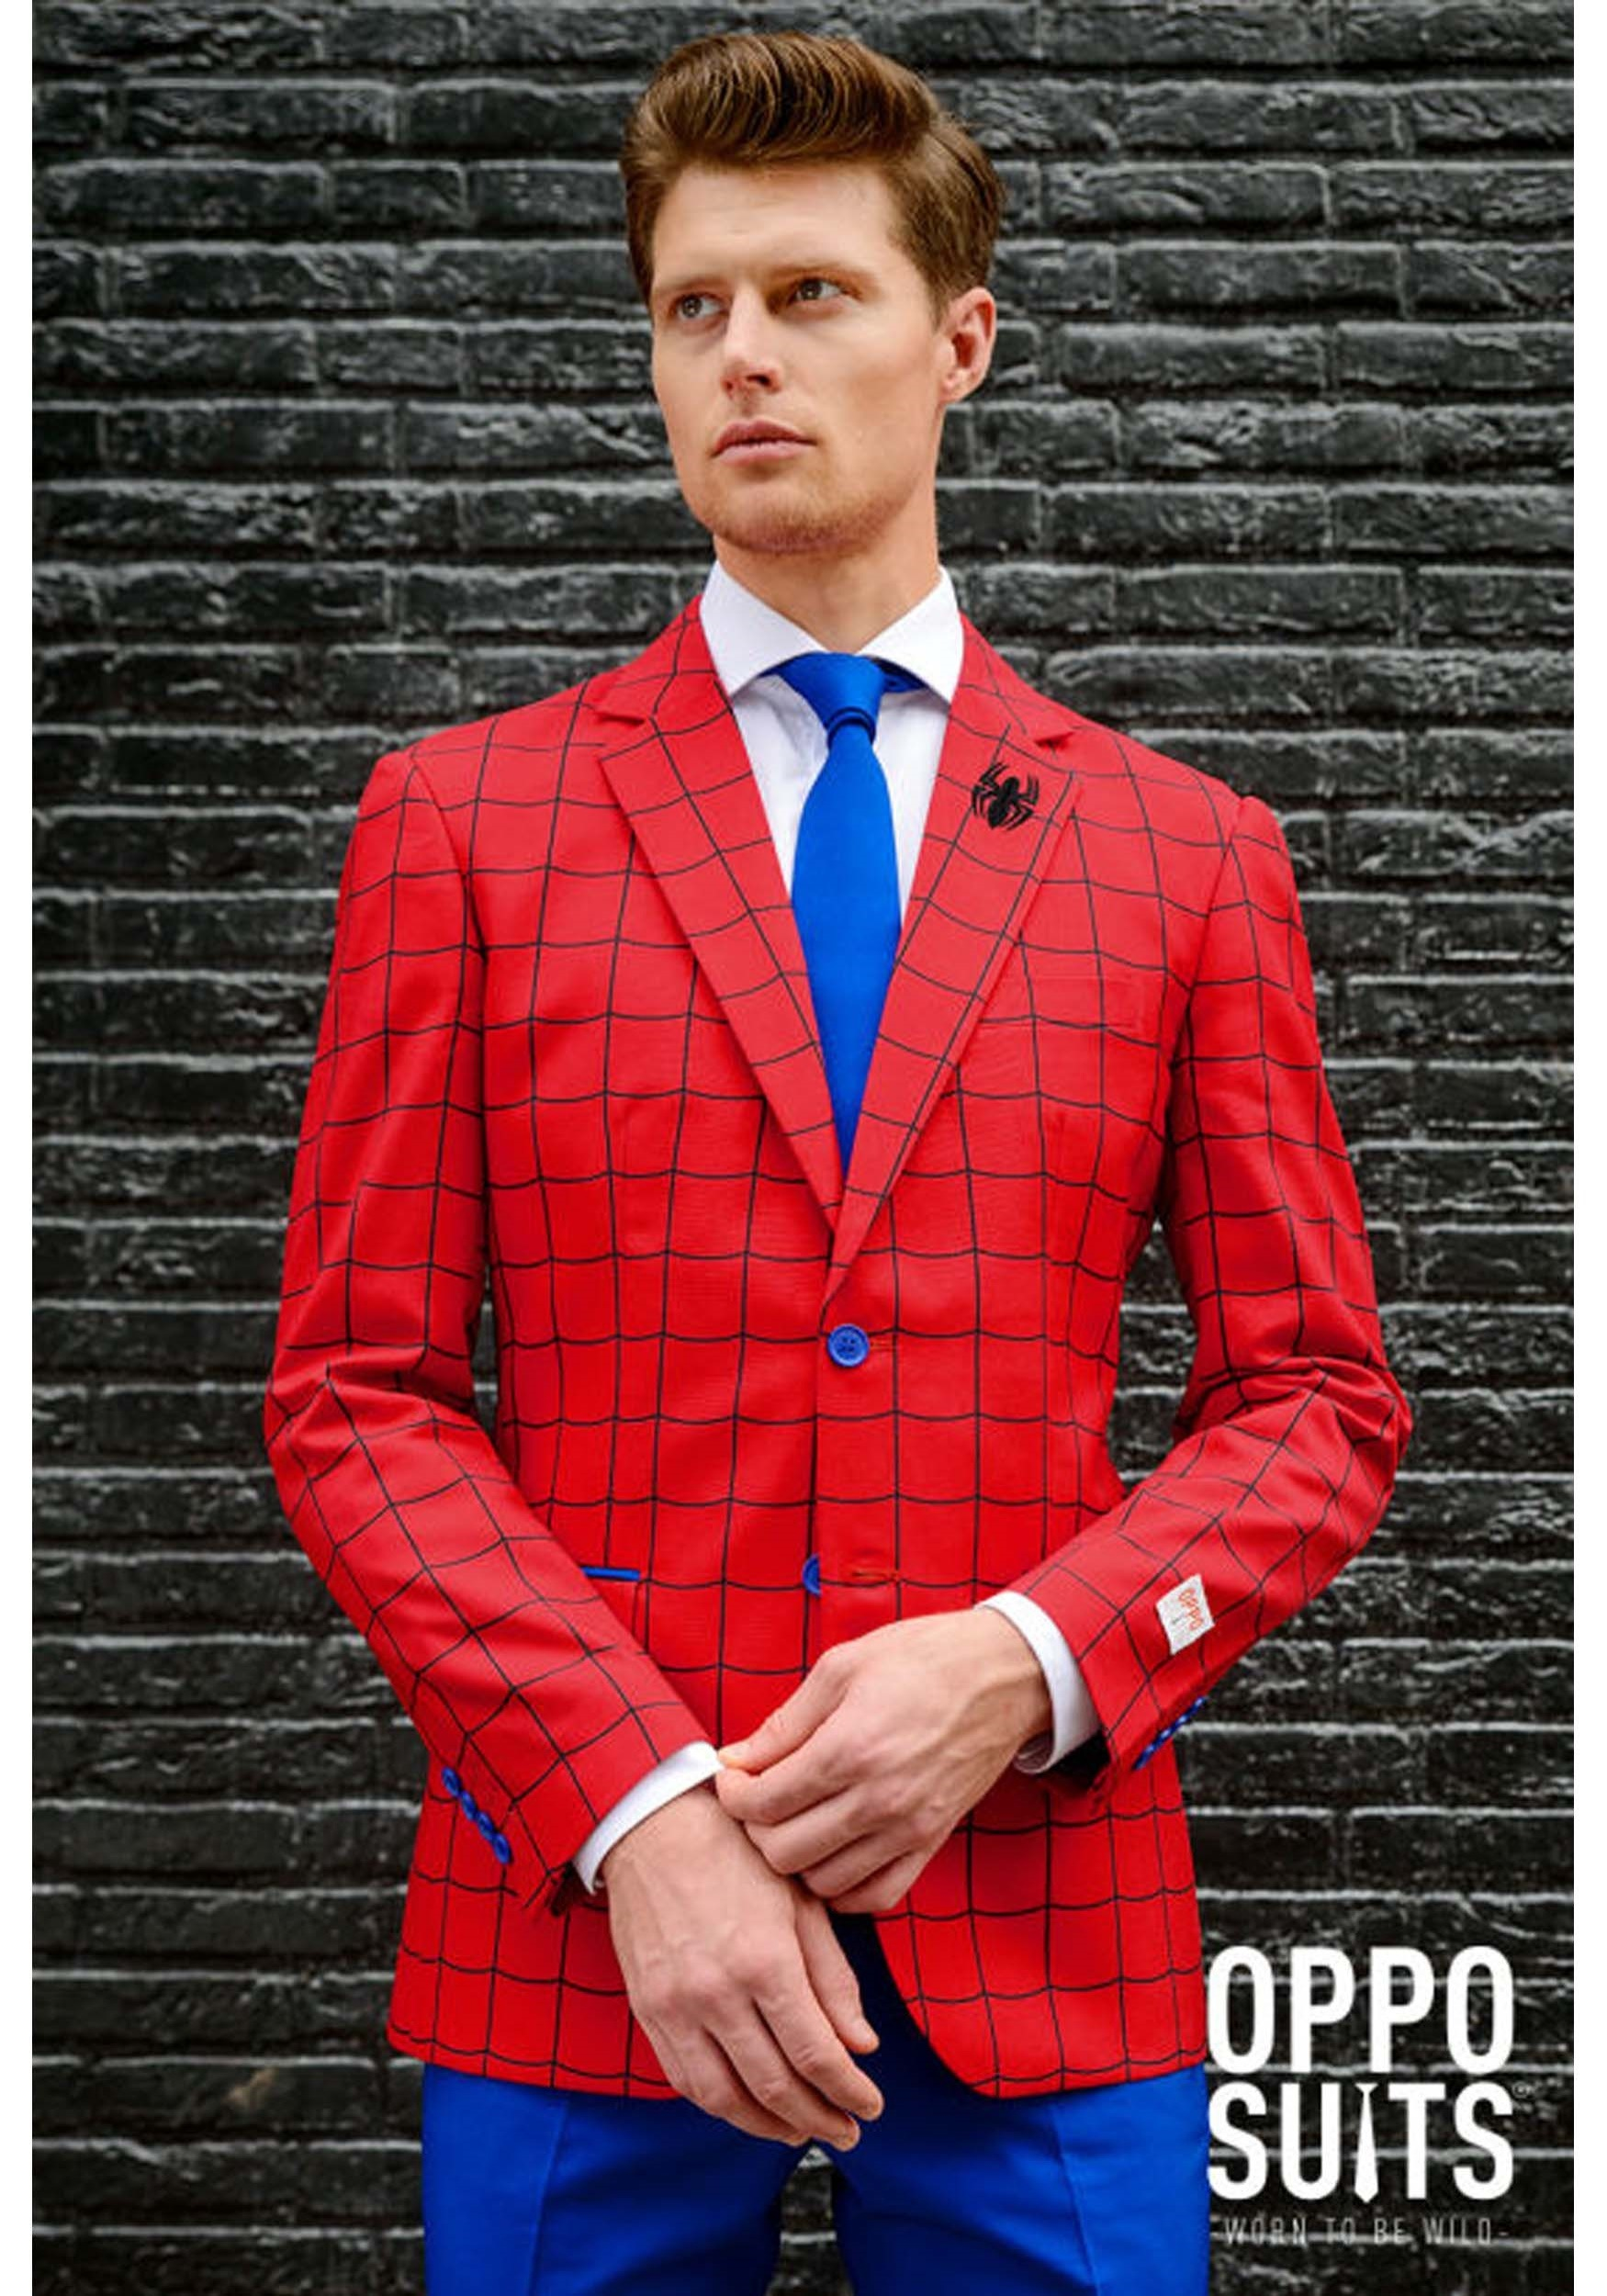 Men's OppoSuits Spider-Man Suit OSOSUI0082